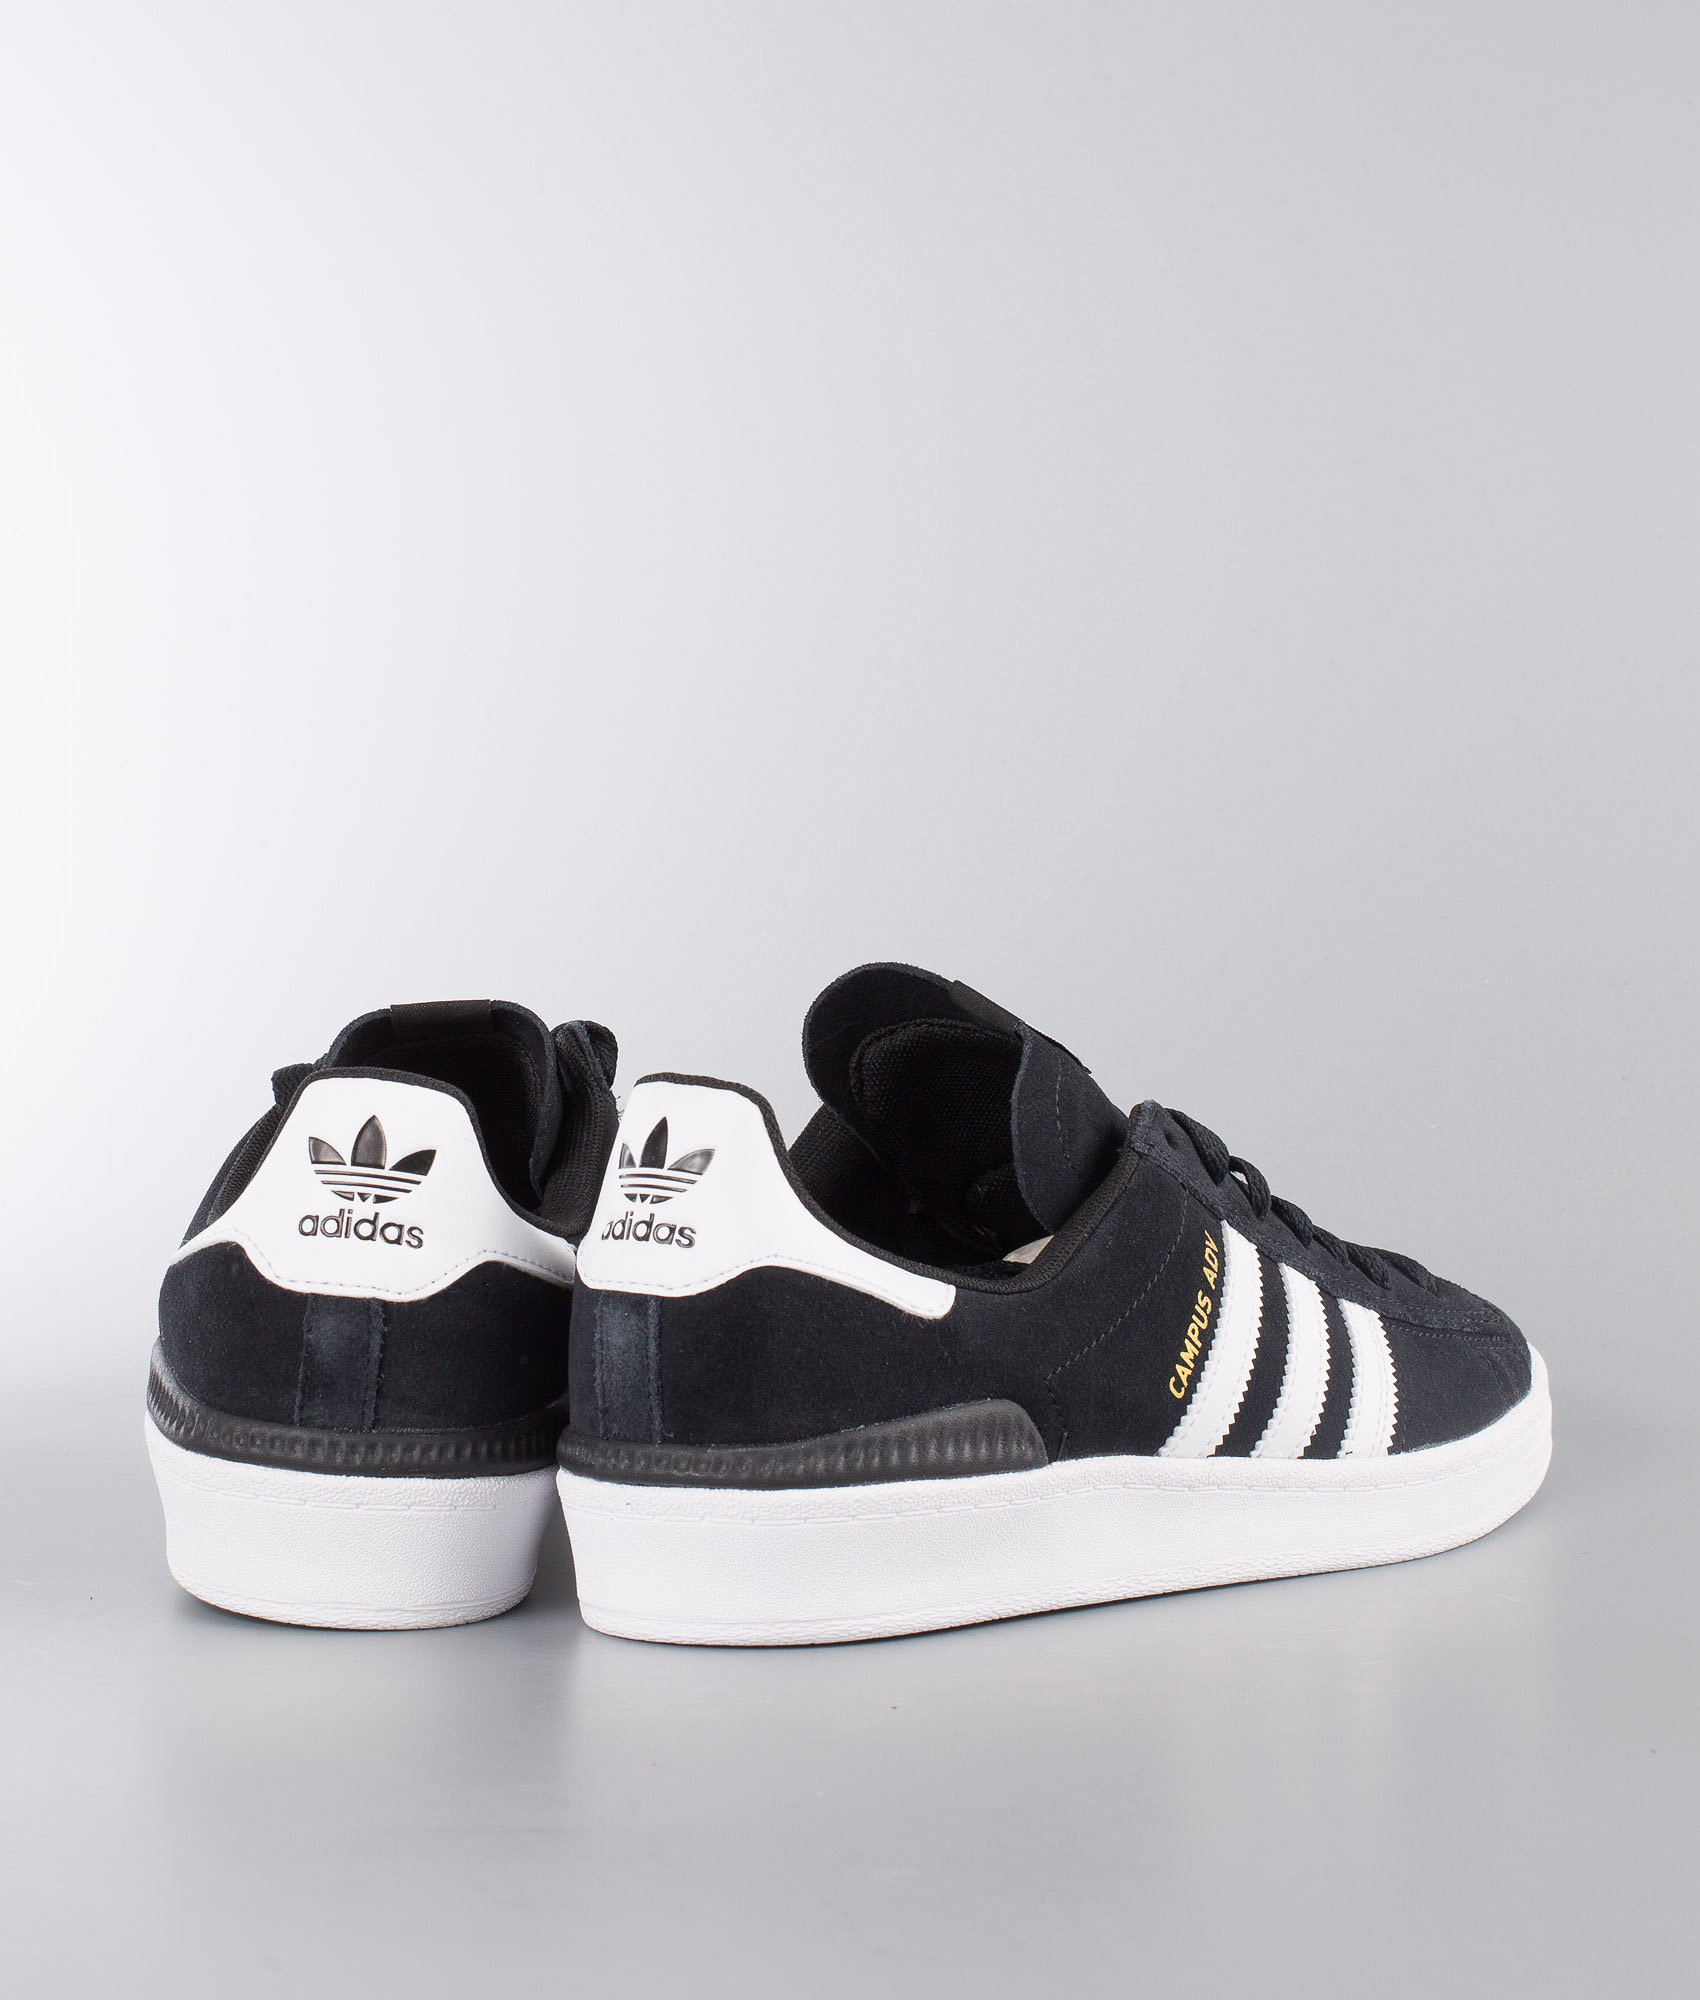 b6d6077499cb Adidas Skateboarding Campus Adv Shoes Core Black Ftwr White Ftwr ...